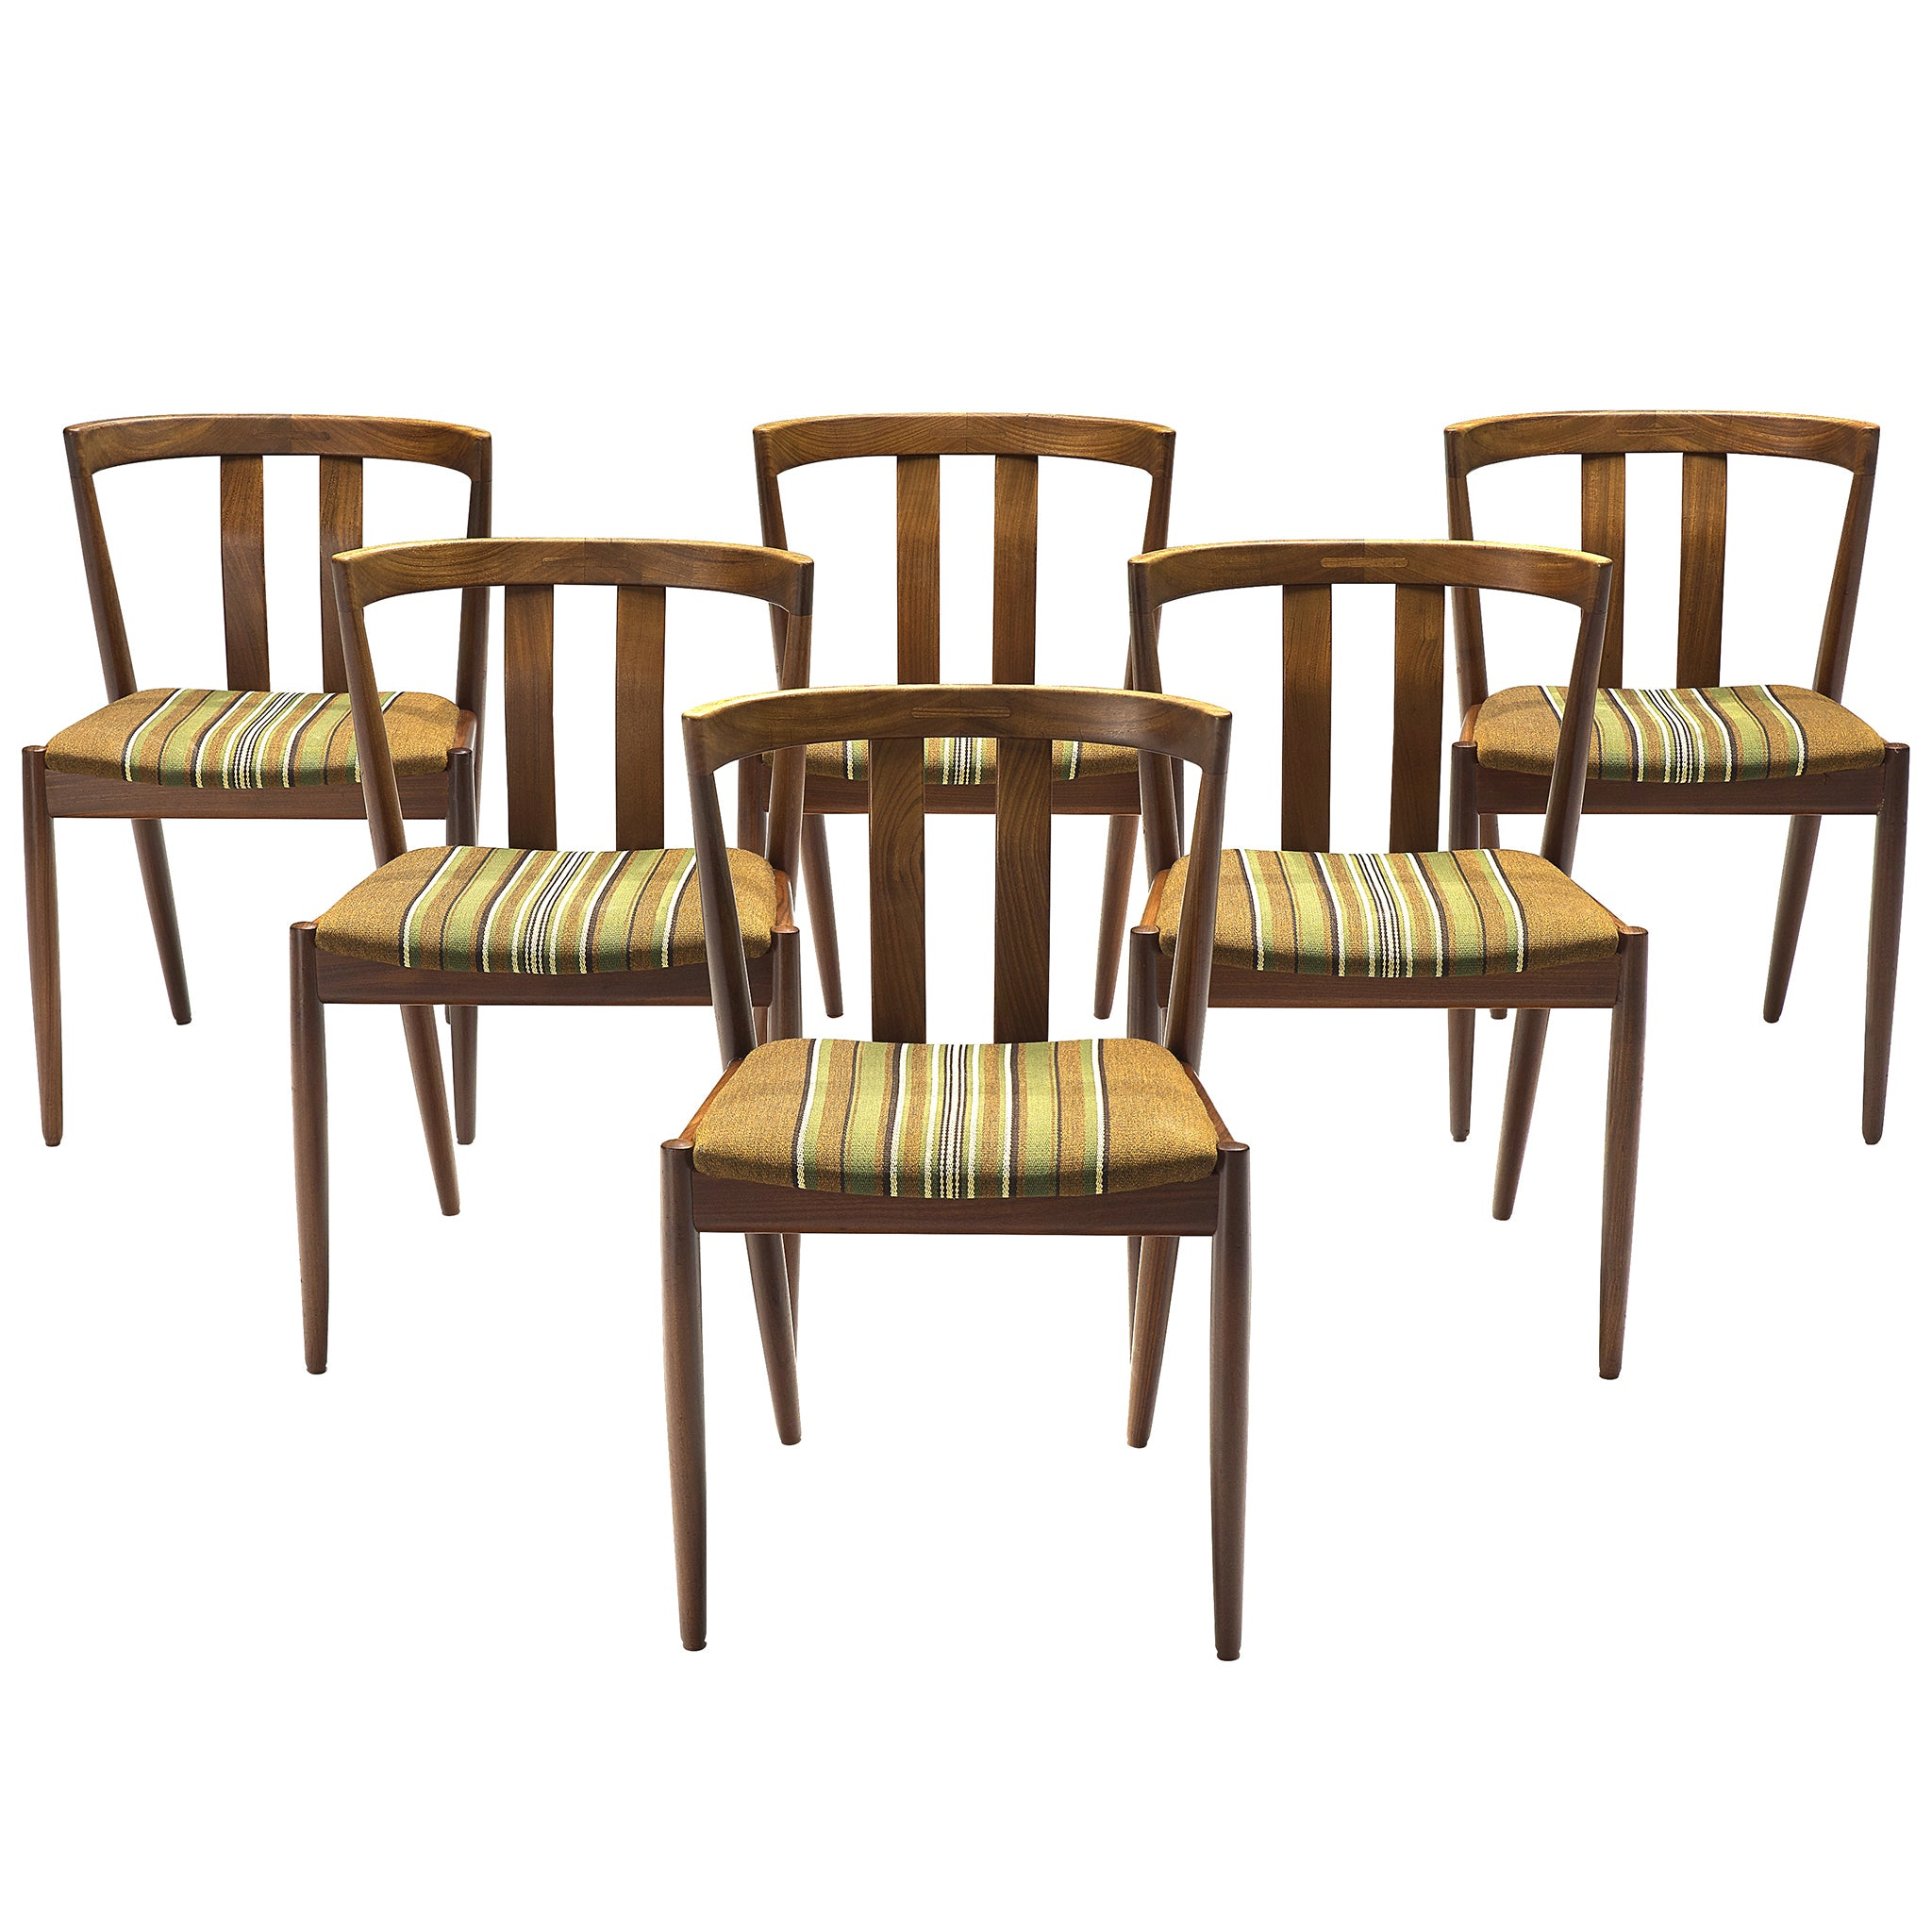 Danish Set of Six Teak Dining Chairs, 1960s